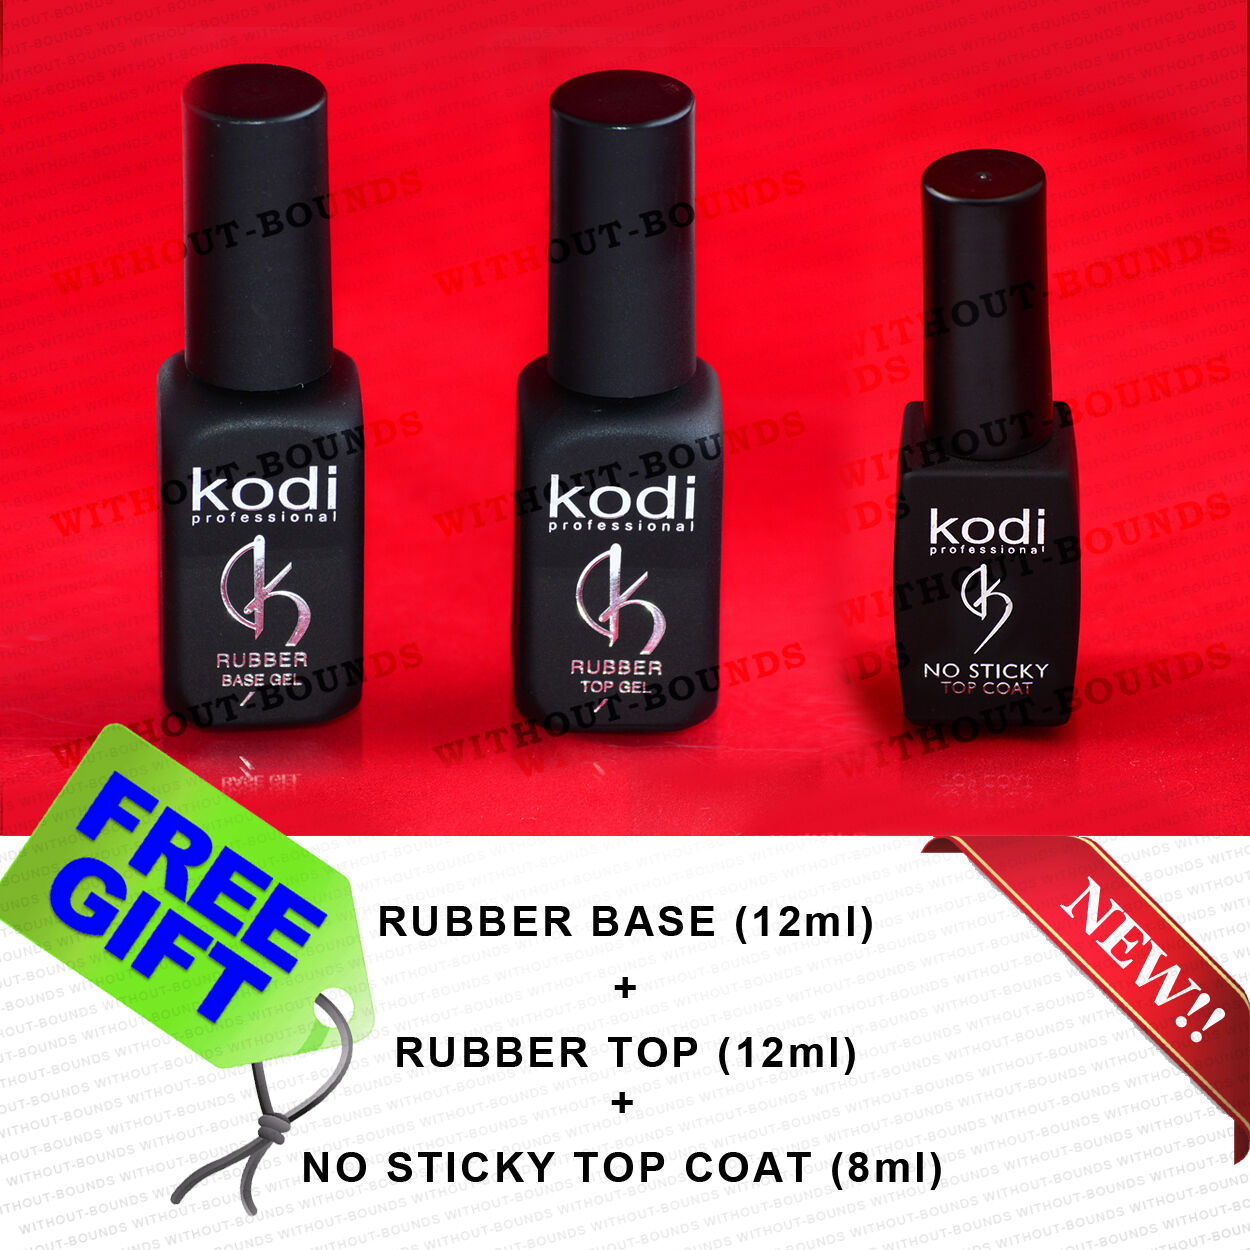 Kodi PROFESSIONAL Rubber Base + NO STICKY TOP COAT Nail Gel Polish ...